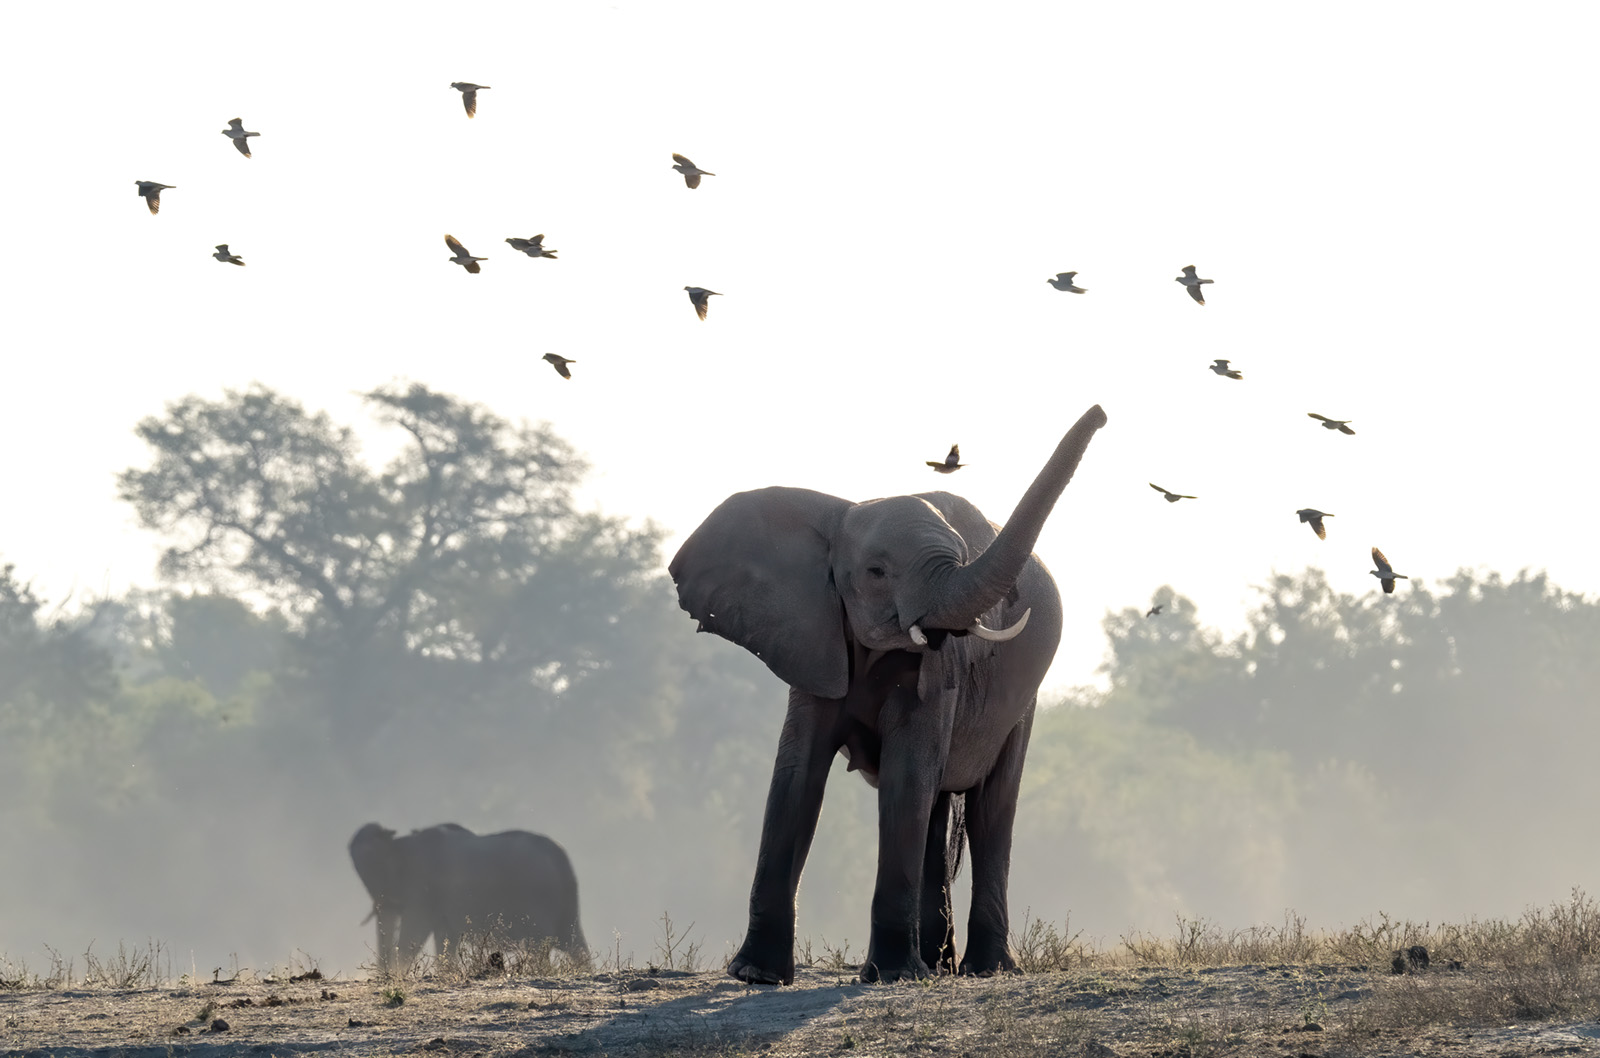 SOLD OUT – 2020 Botswana's Okavango Delta, Chobe River and Namibia's Zambezi River November 2 – 13, 2020